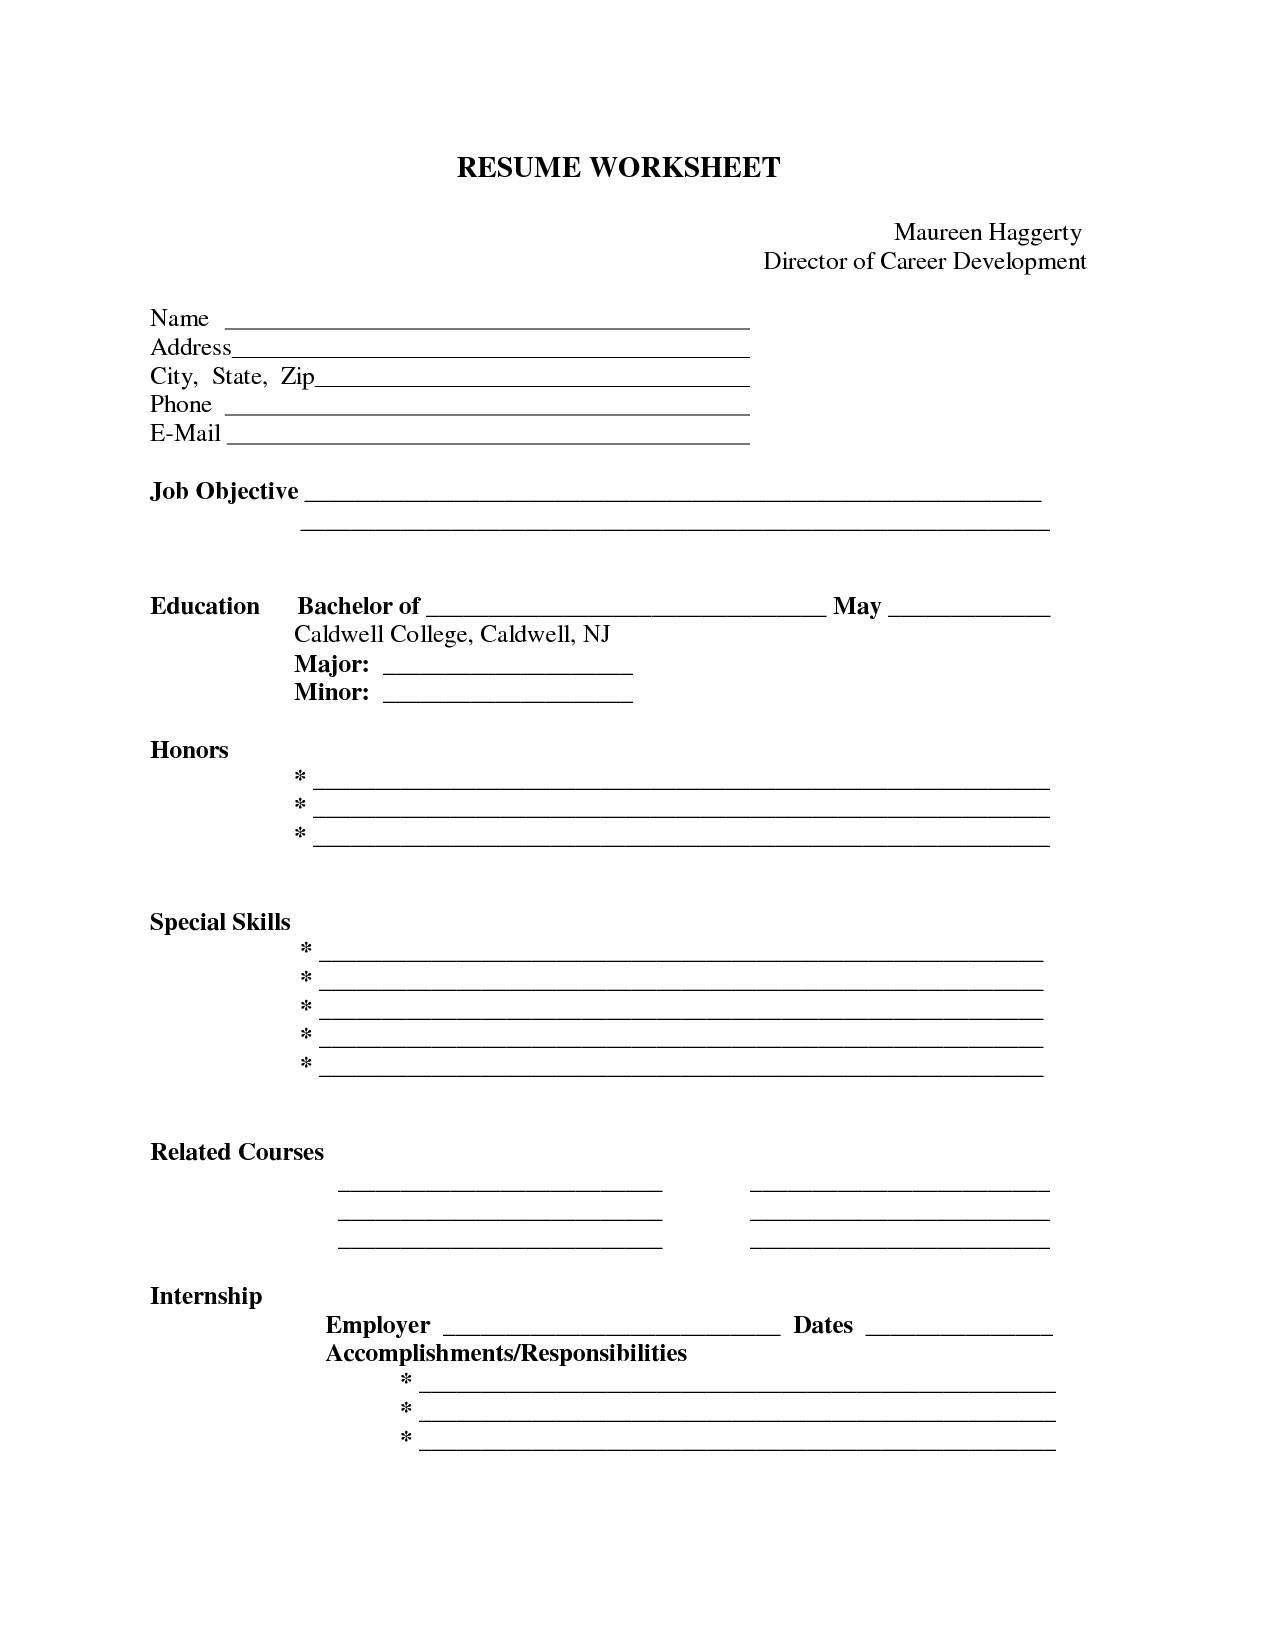 Pinresumejob On Resume Job | Resume Form, Free Printable Resume - Free Printable Resume Templates